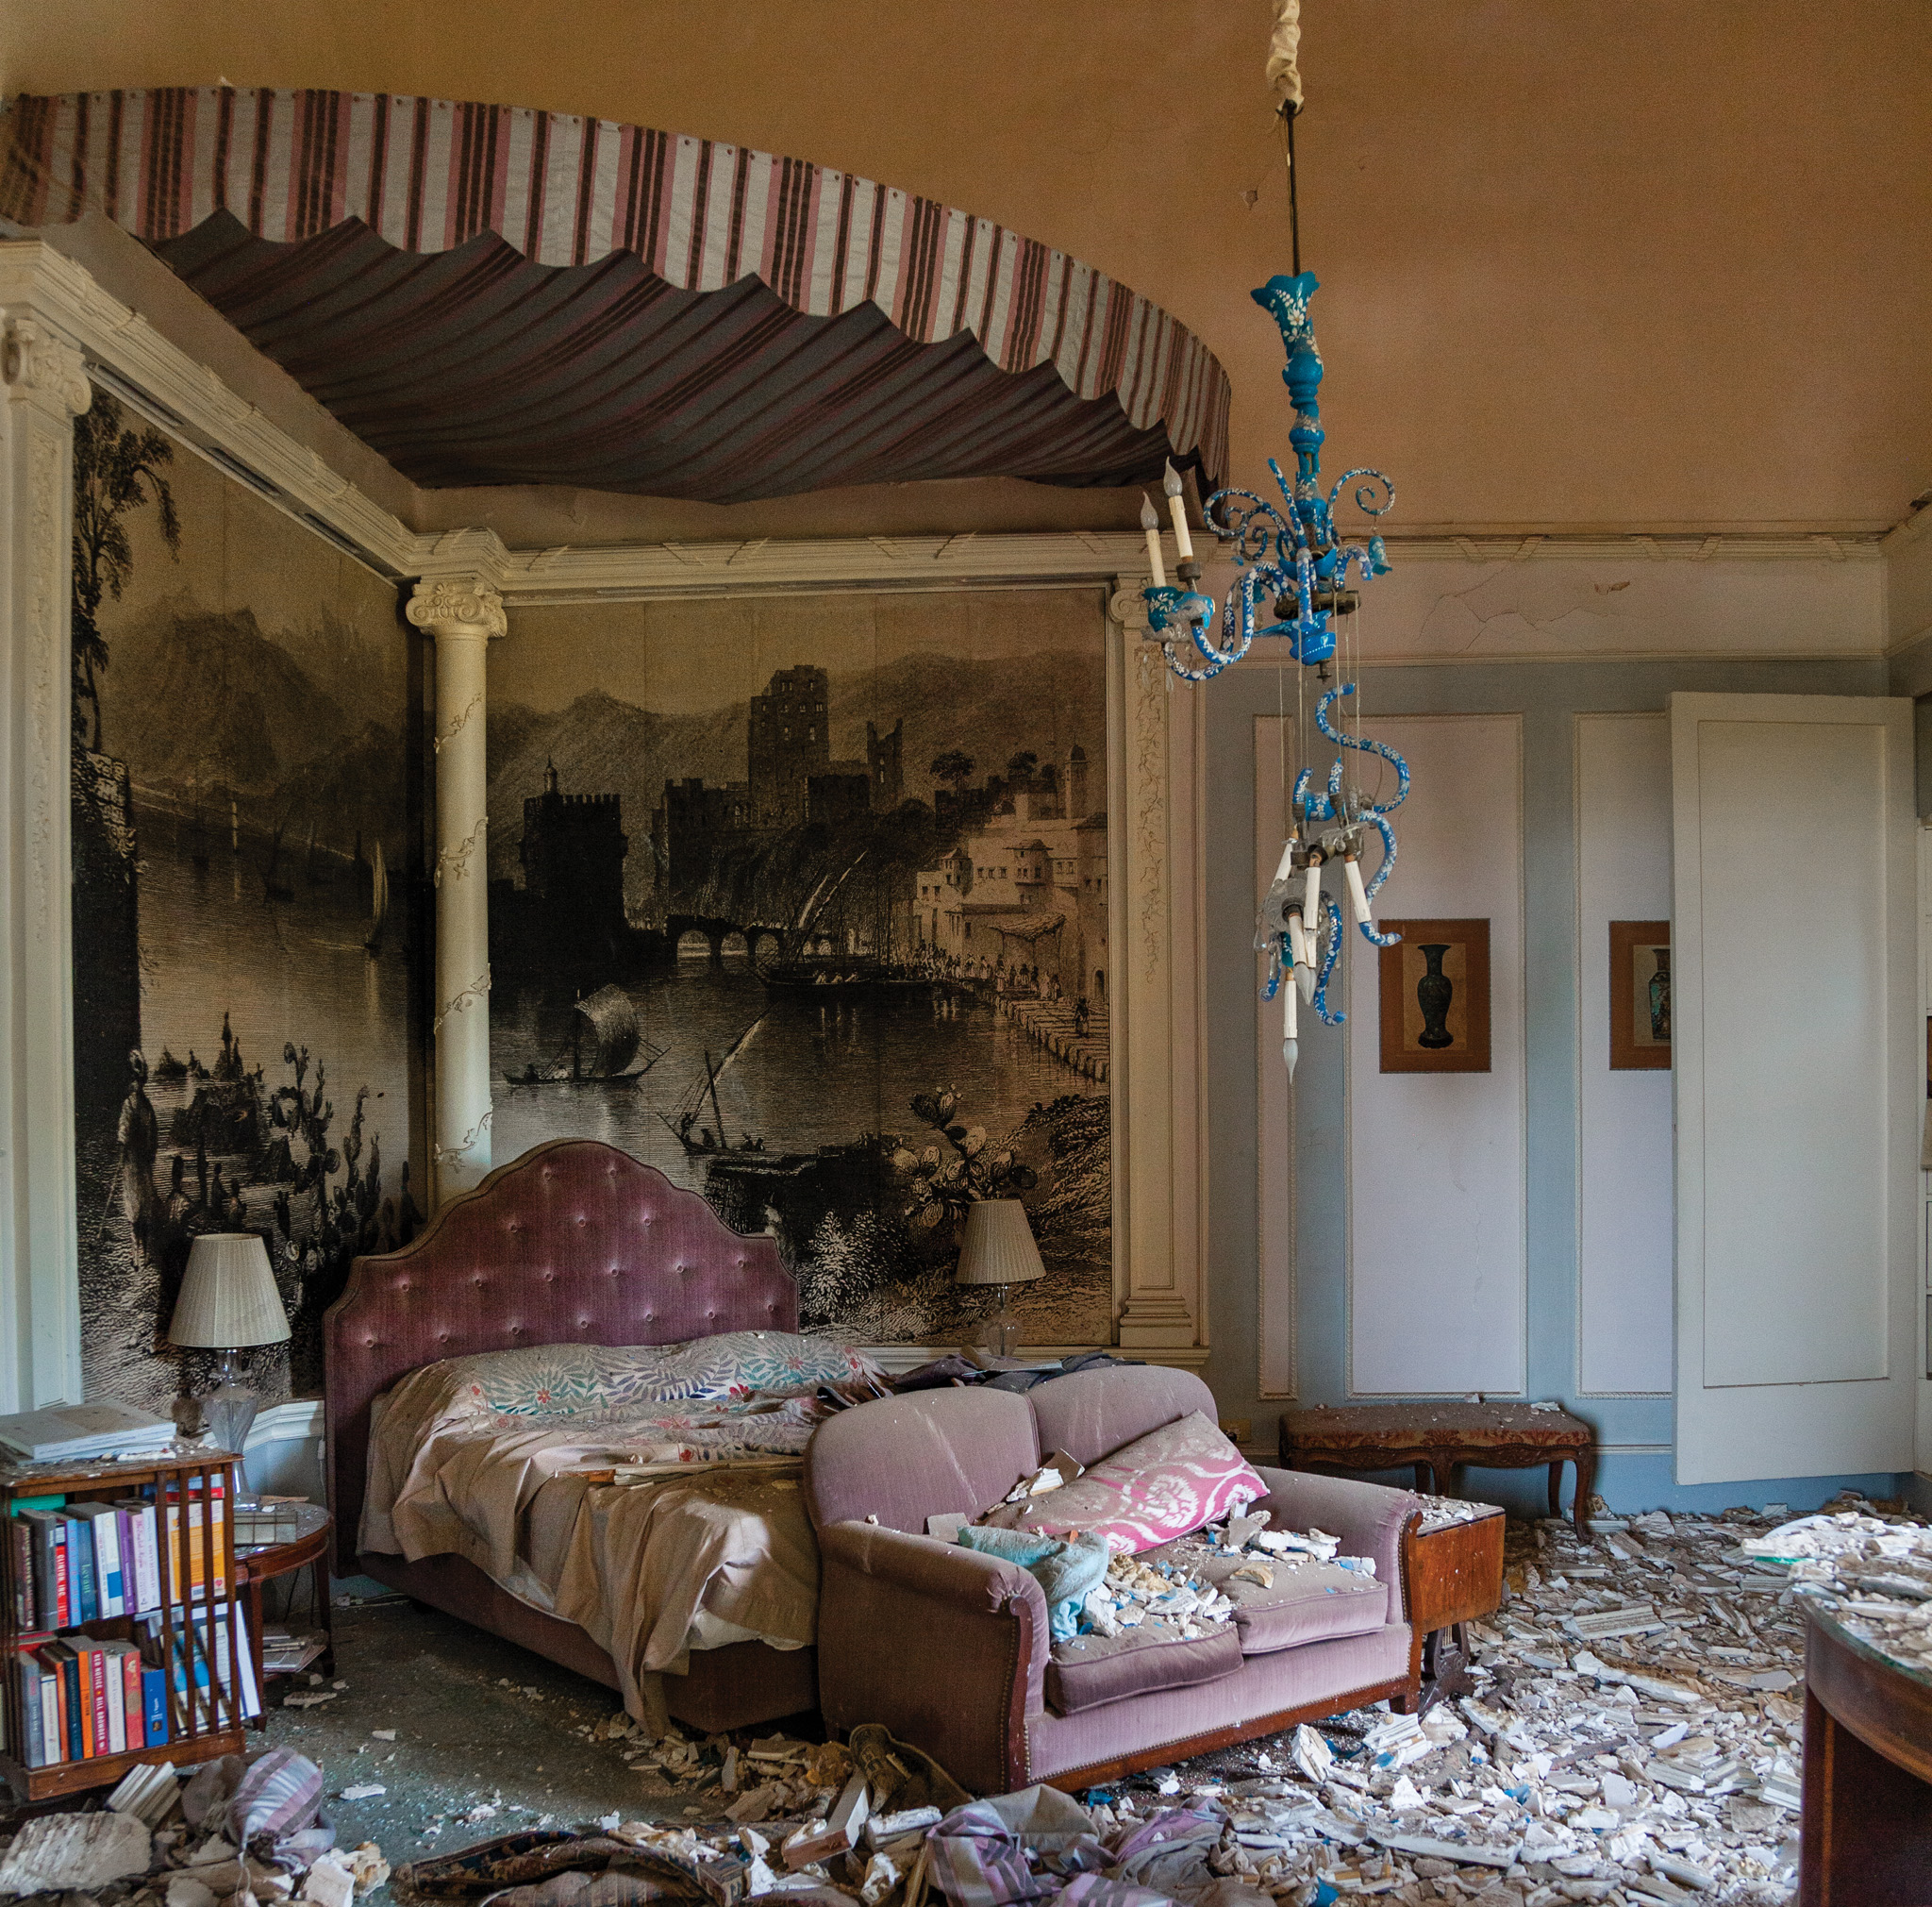 Picture of a bedroom covered in rubble after an explosion